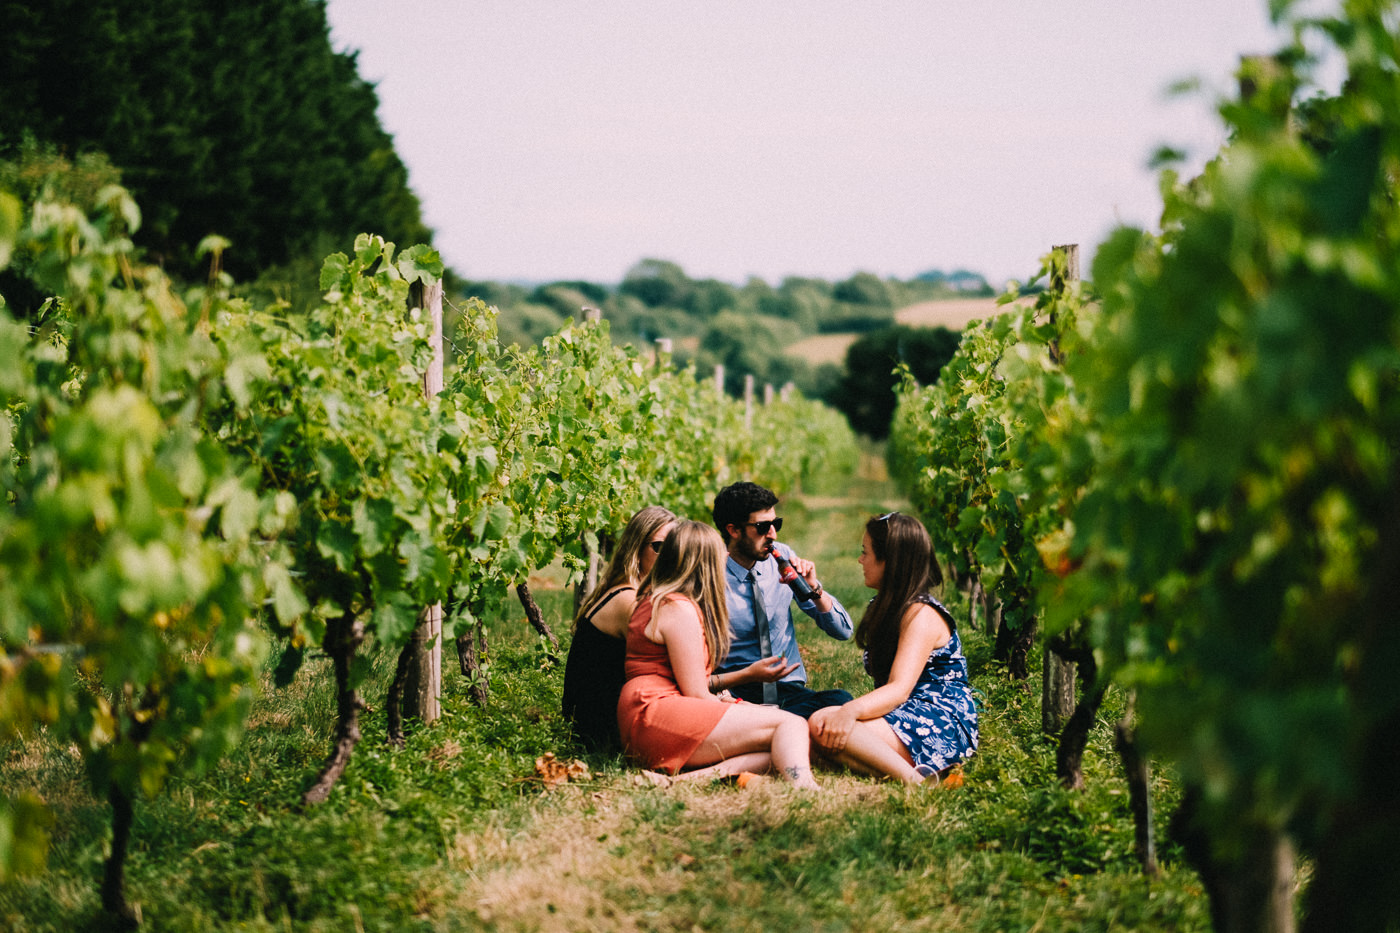 COWBRIDGE GLYNDWR VINEYARD WEDDING PHOTOGRAPHY CARDIFF SOUTH WALES 072